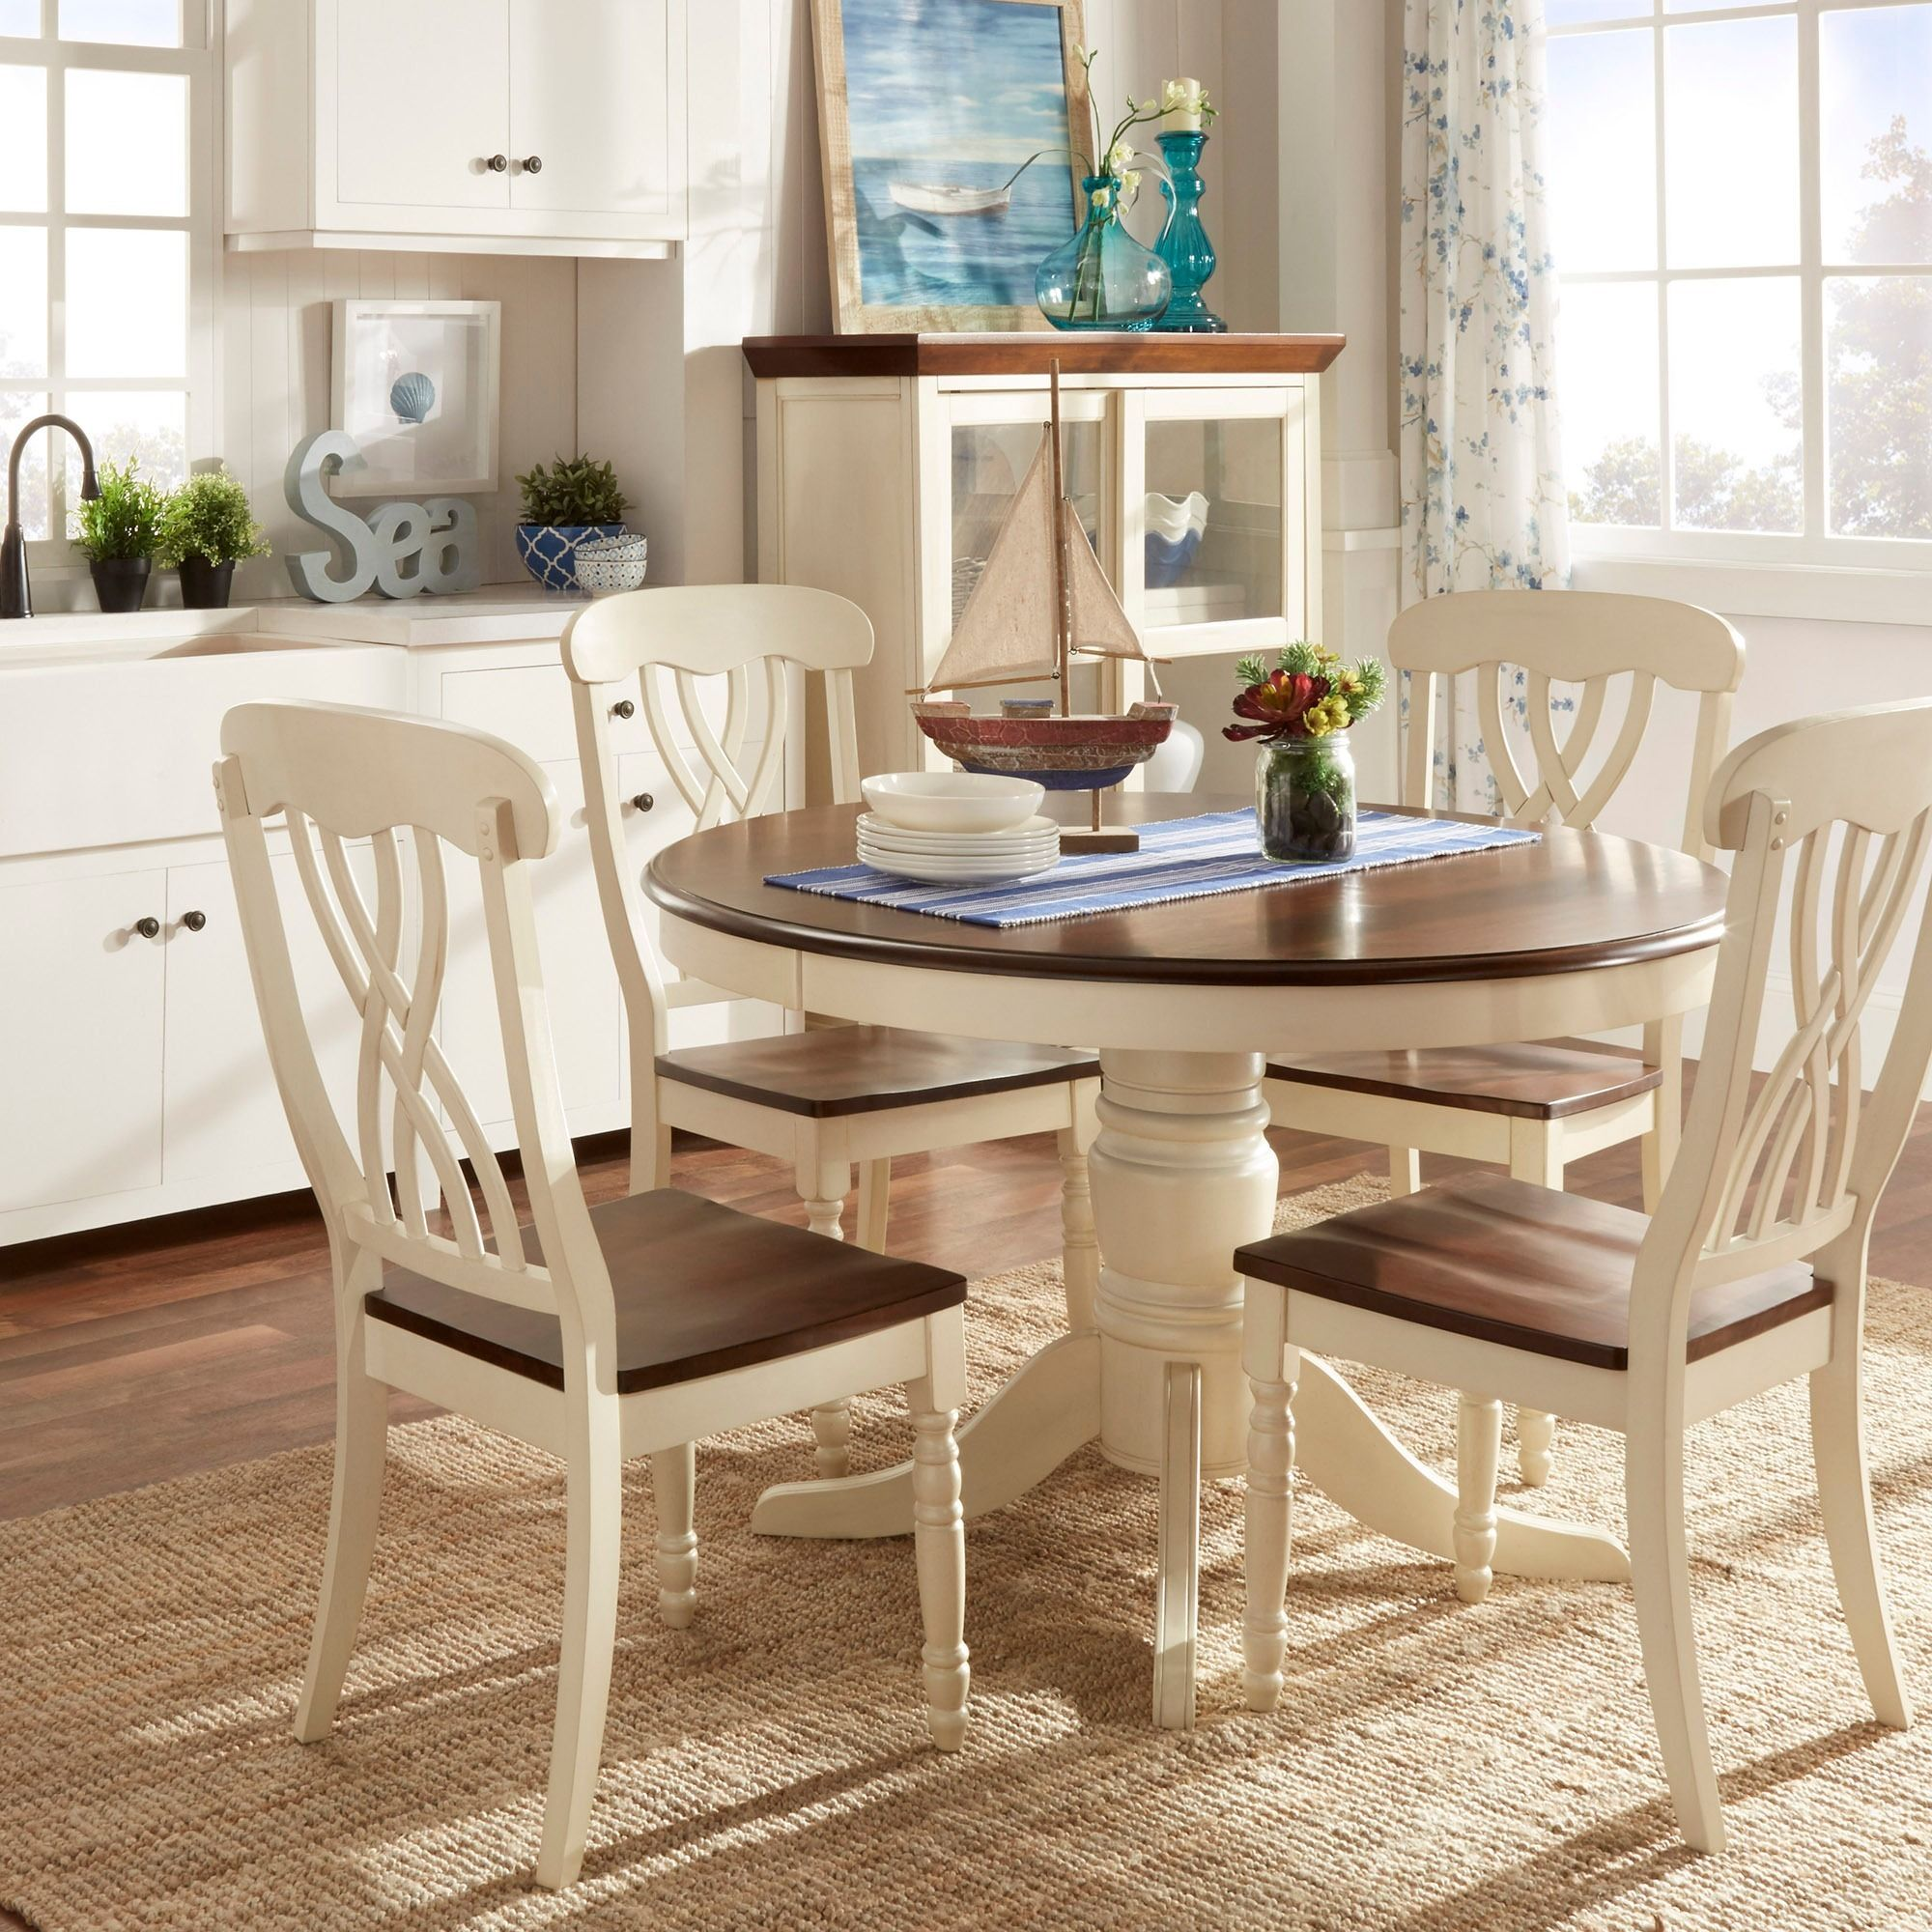 Apartment Kitchen Table And Chairs: The Design Of This 5-piece Dining Set From Mackenzie